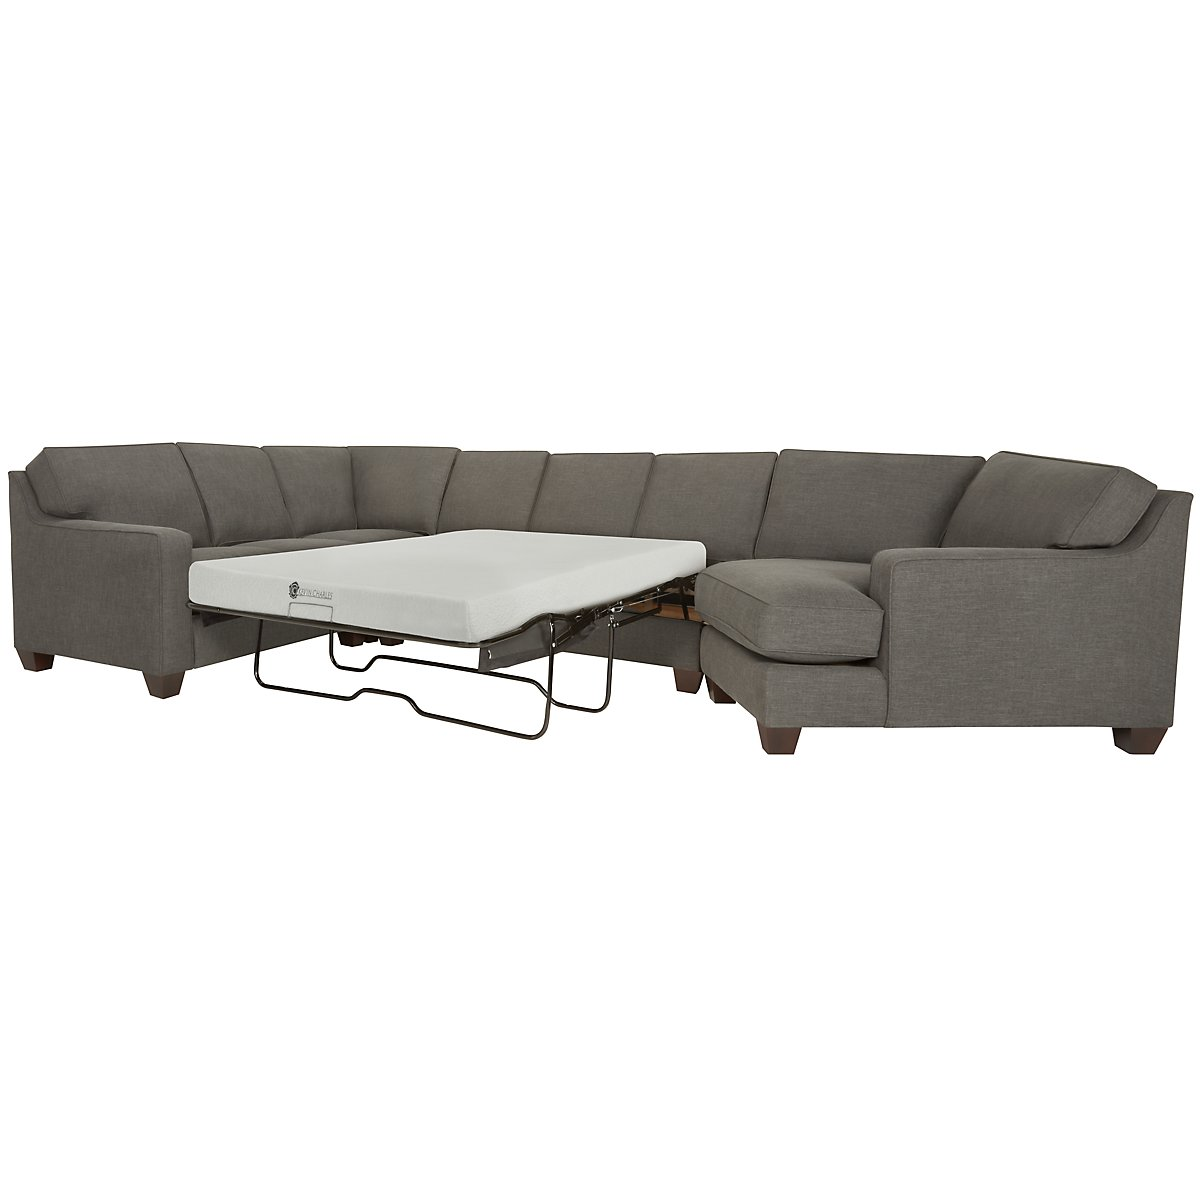 York Dark Gray Fabric Small Right Cuddler Memory Foam Sleeper Sectional